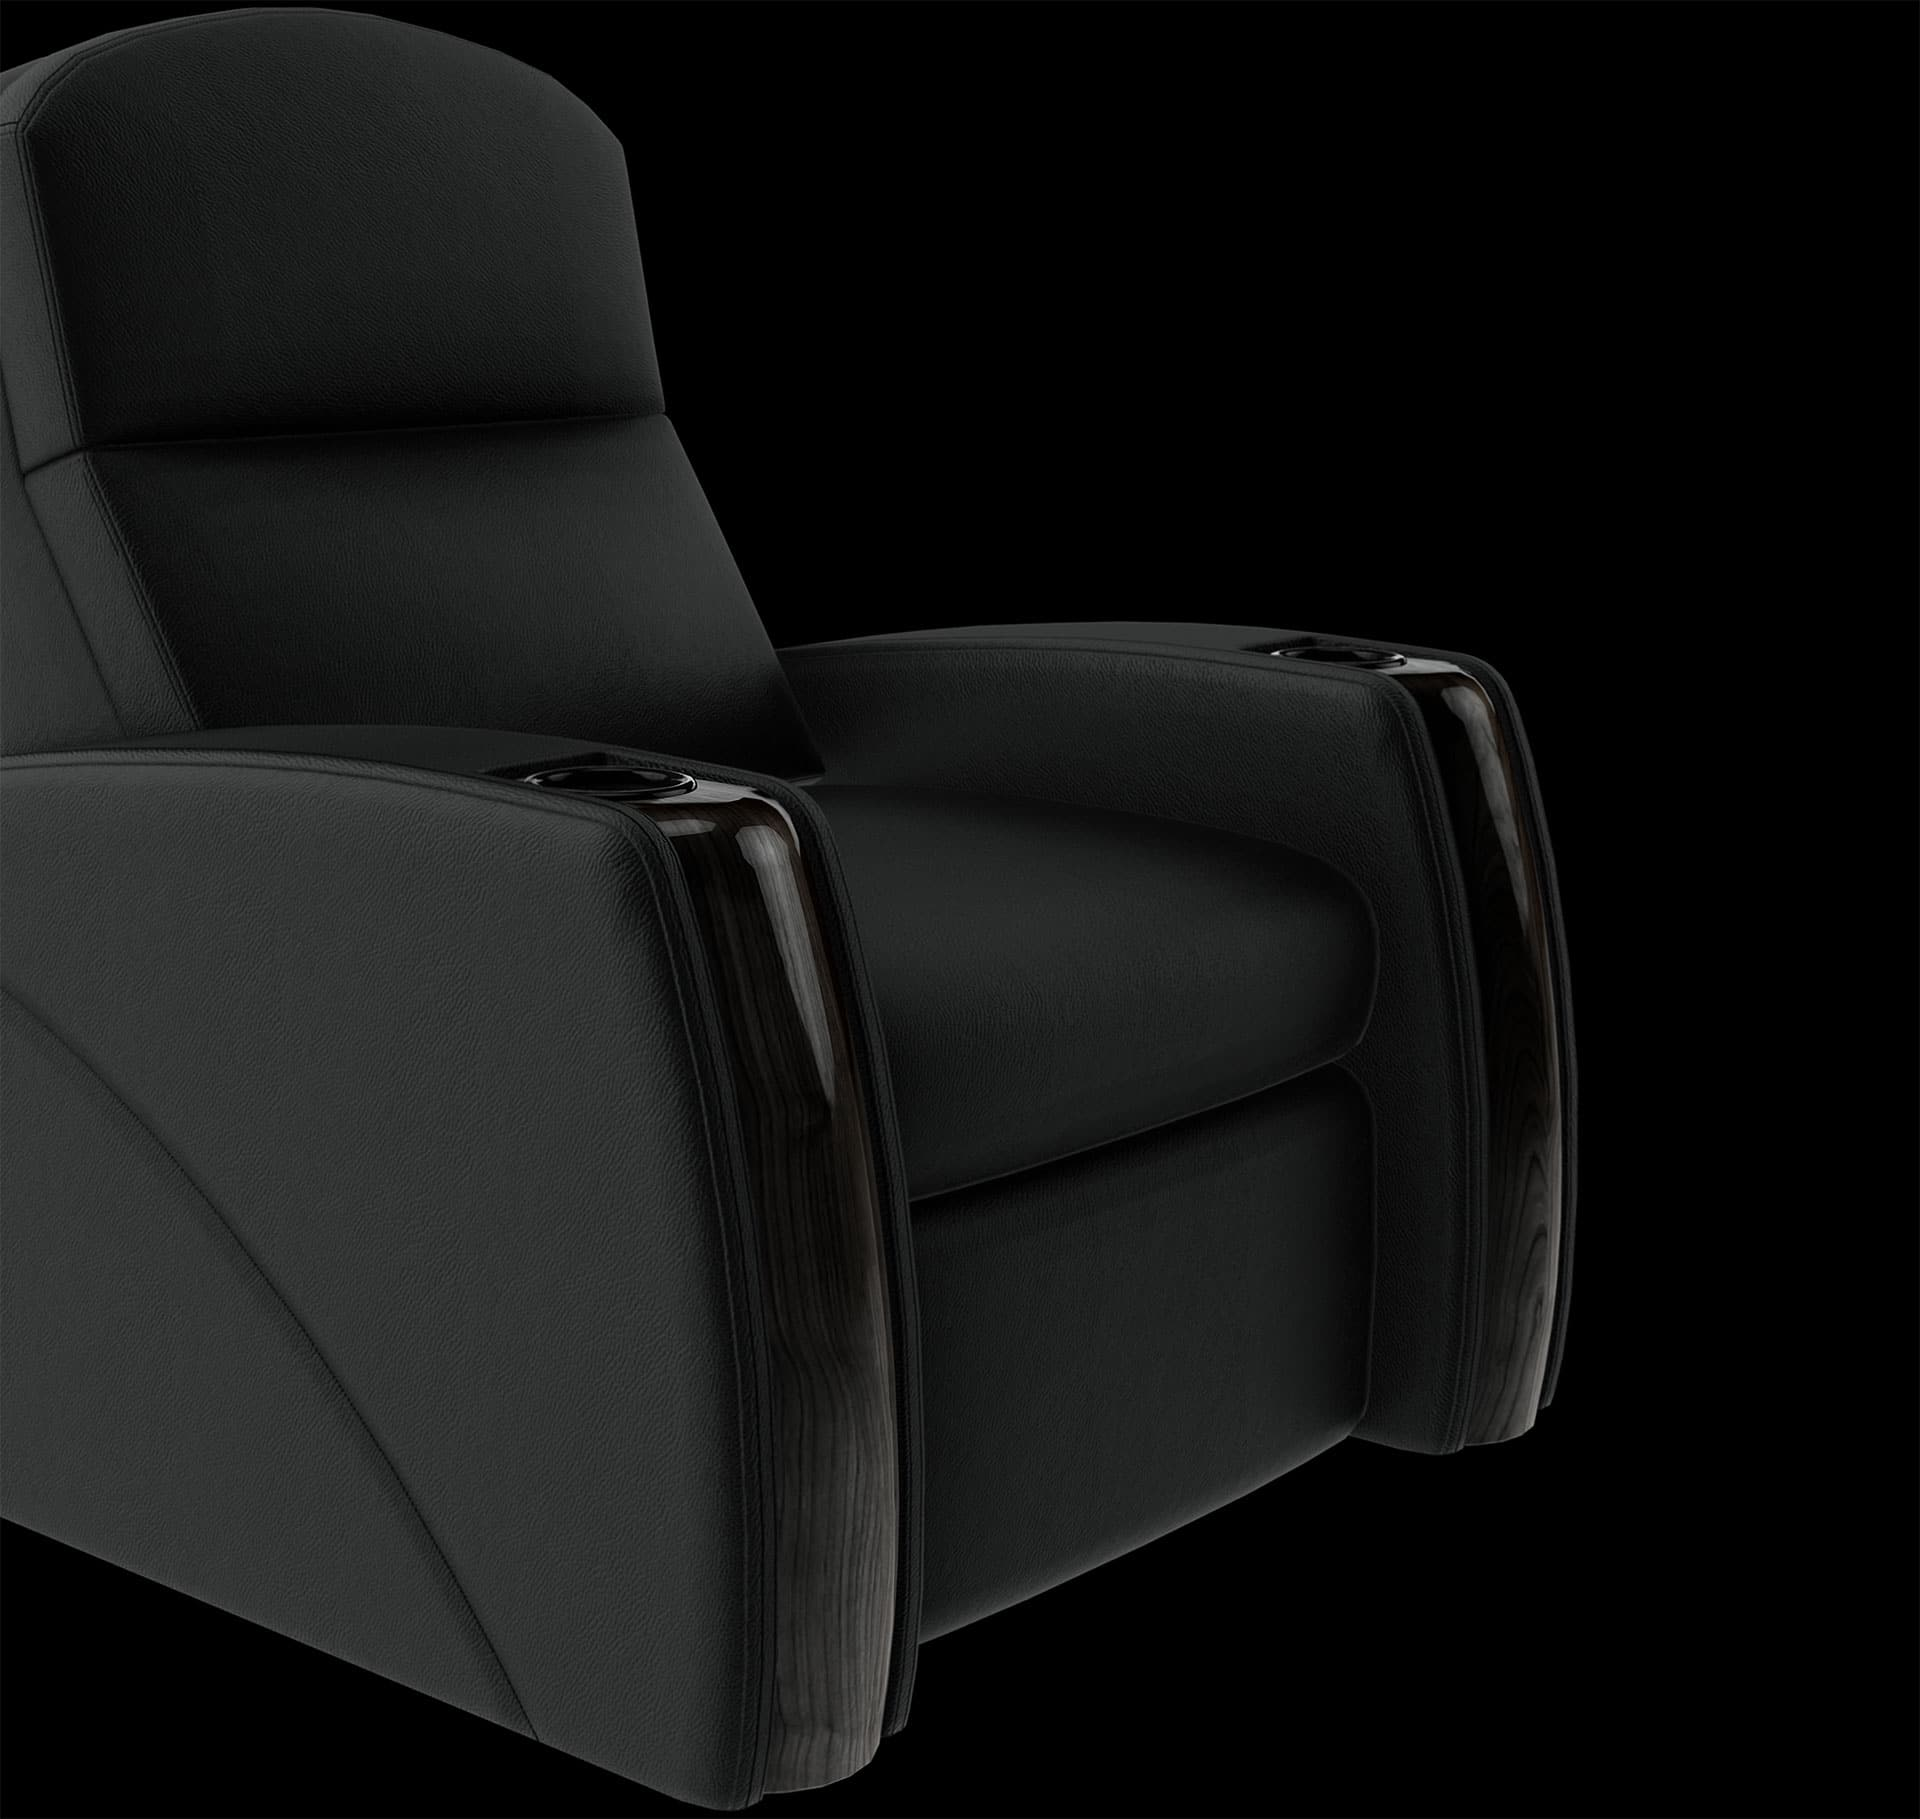 Home theater chairs black image